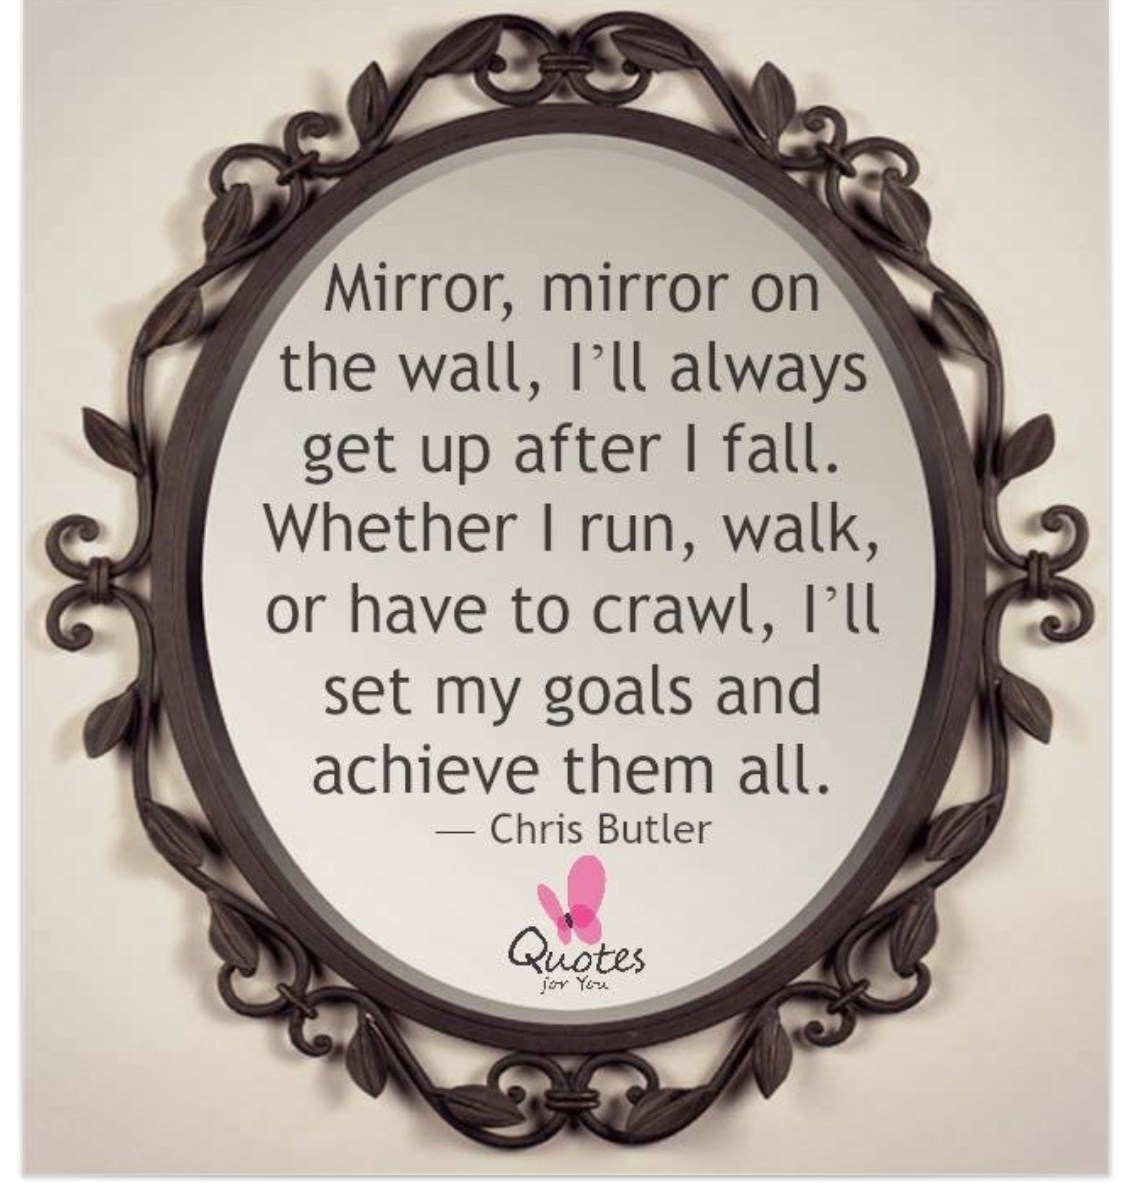 Mirror, mirror on the wall, I'll always get up after I fall. Whether I run , walk, or have to crawl. I'll set my goals and achieve them all.